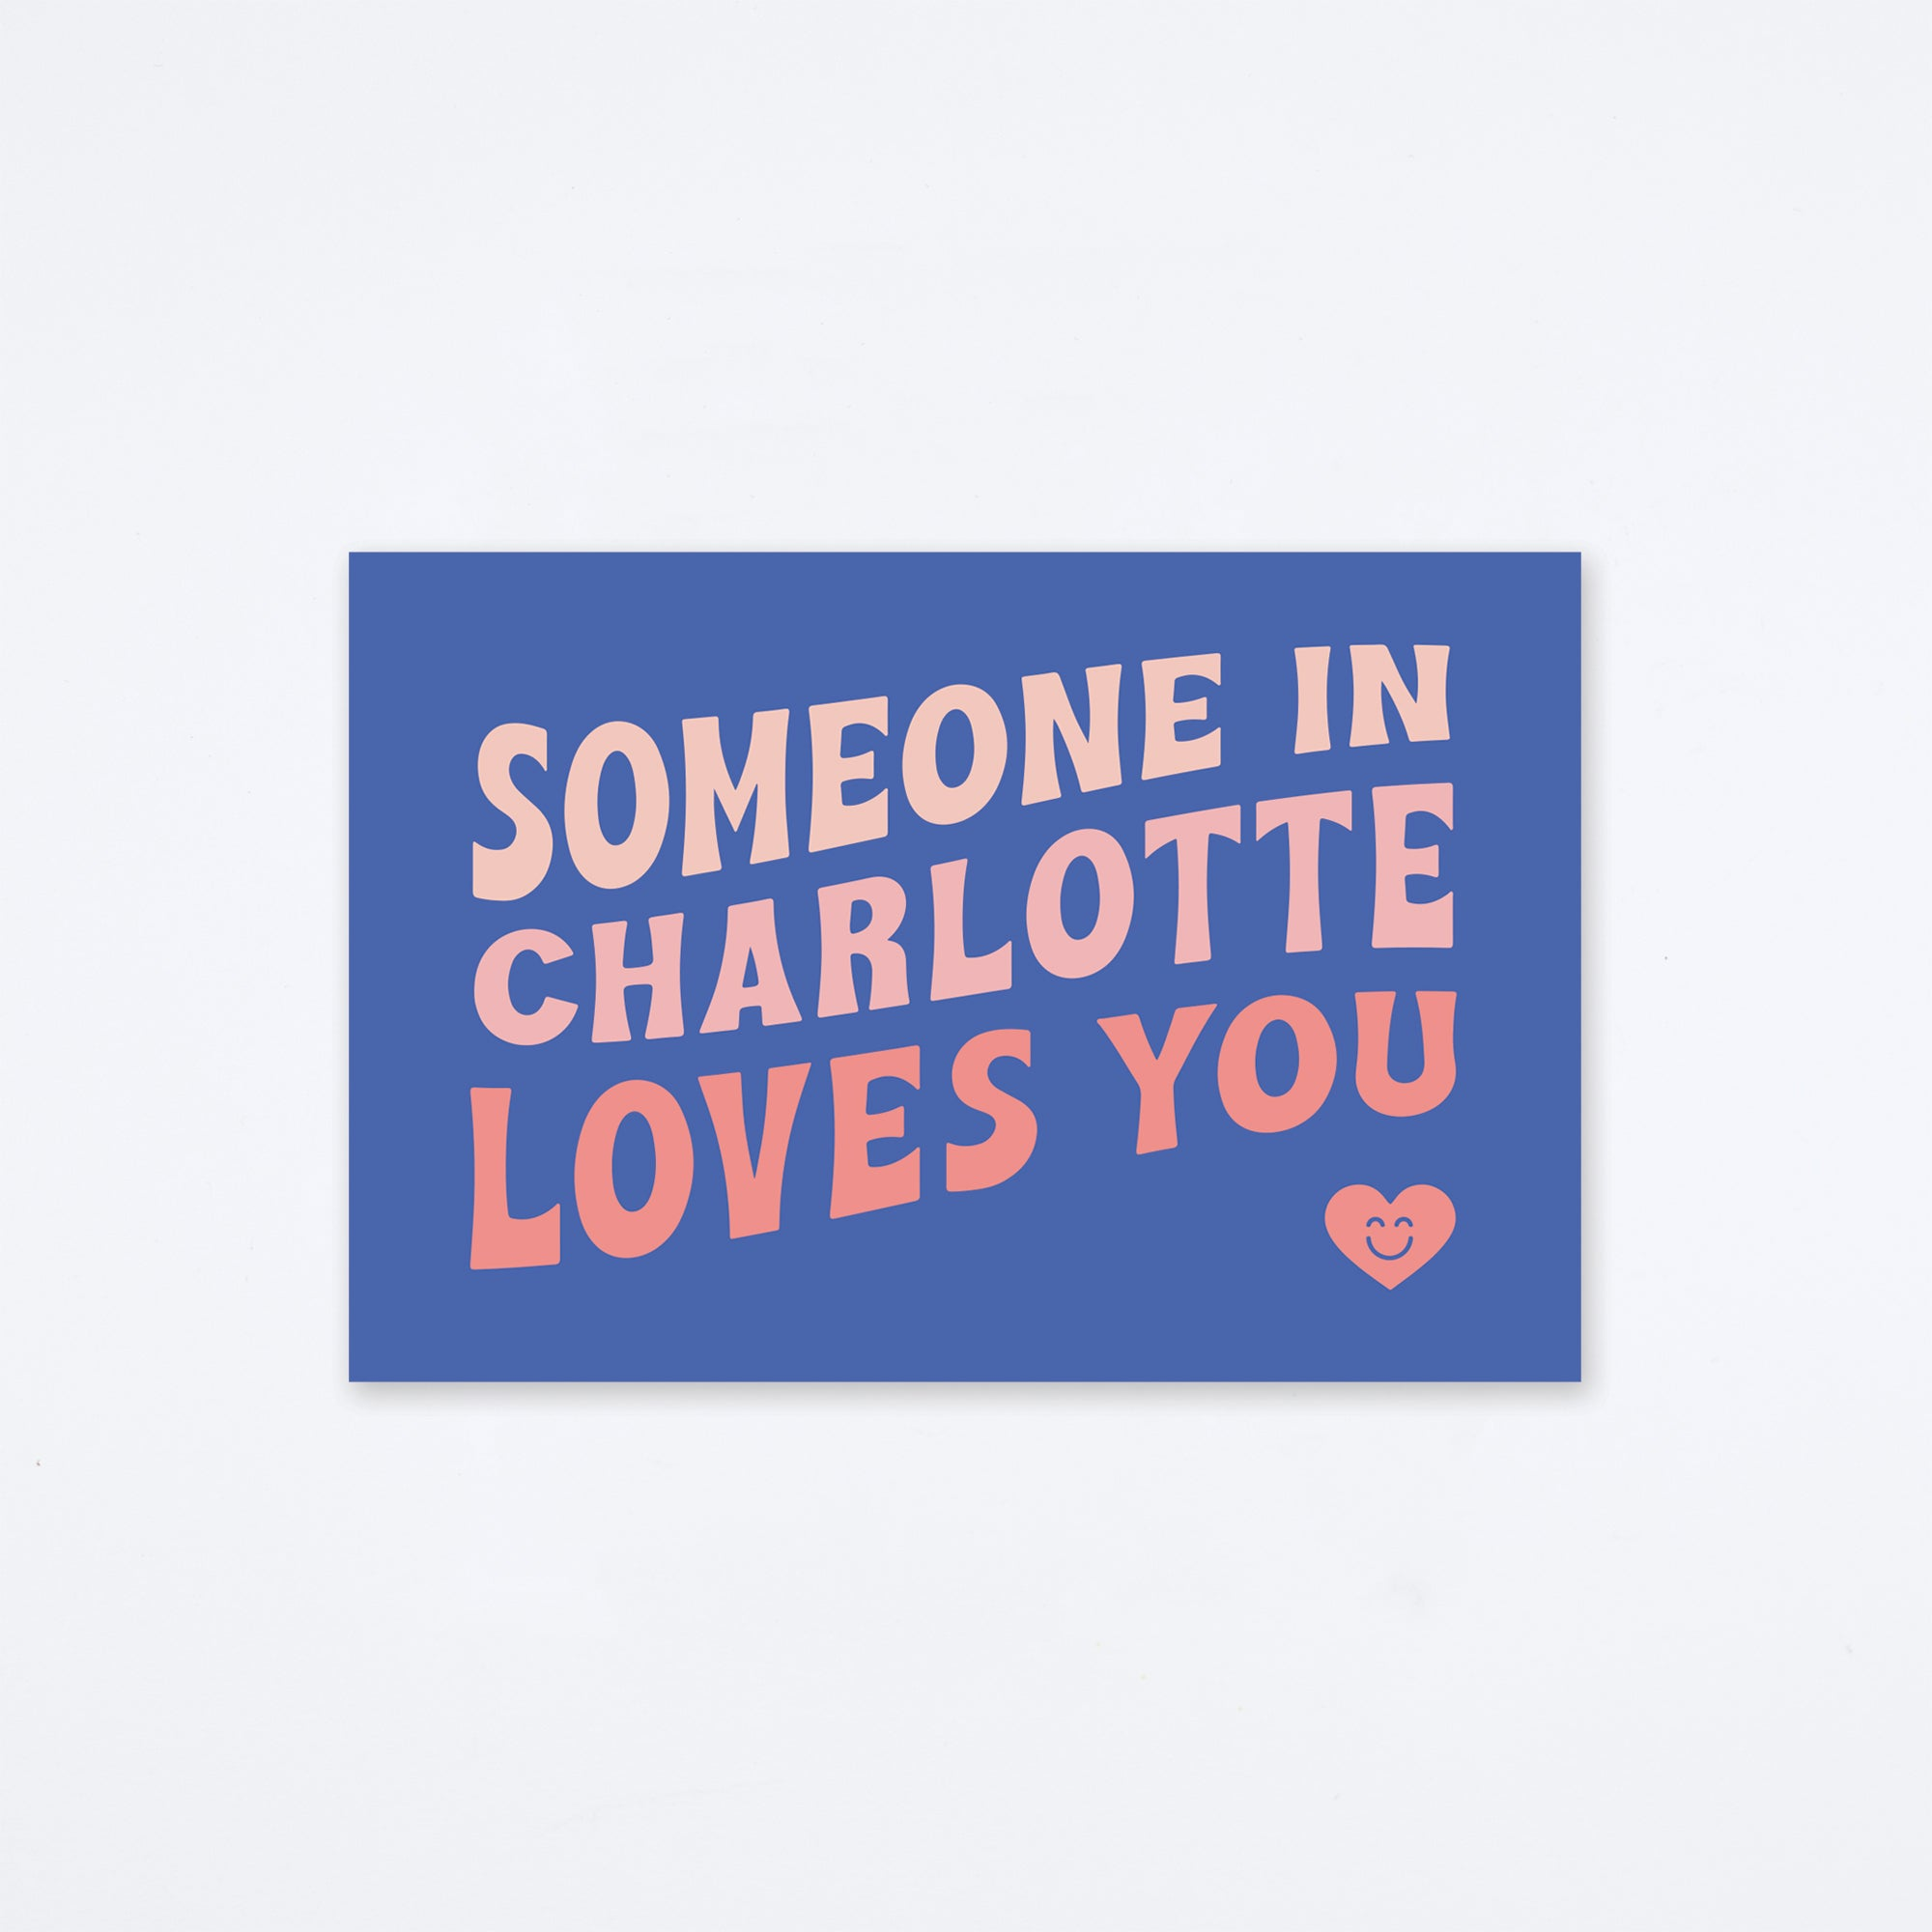 Loves You Charlotte Postcard